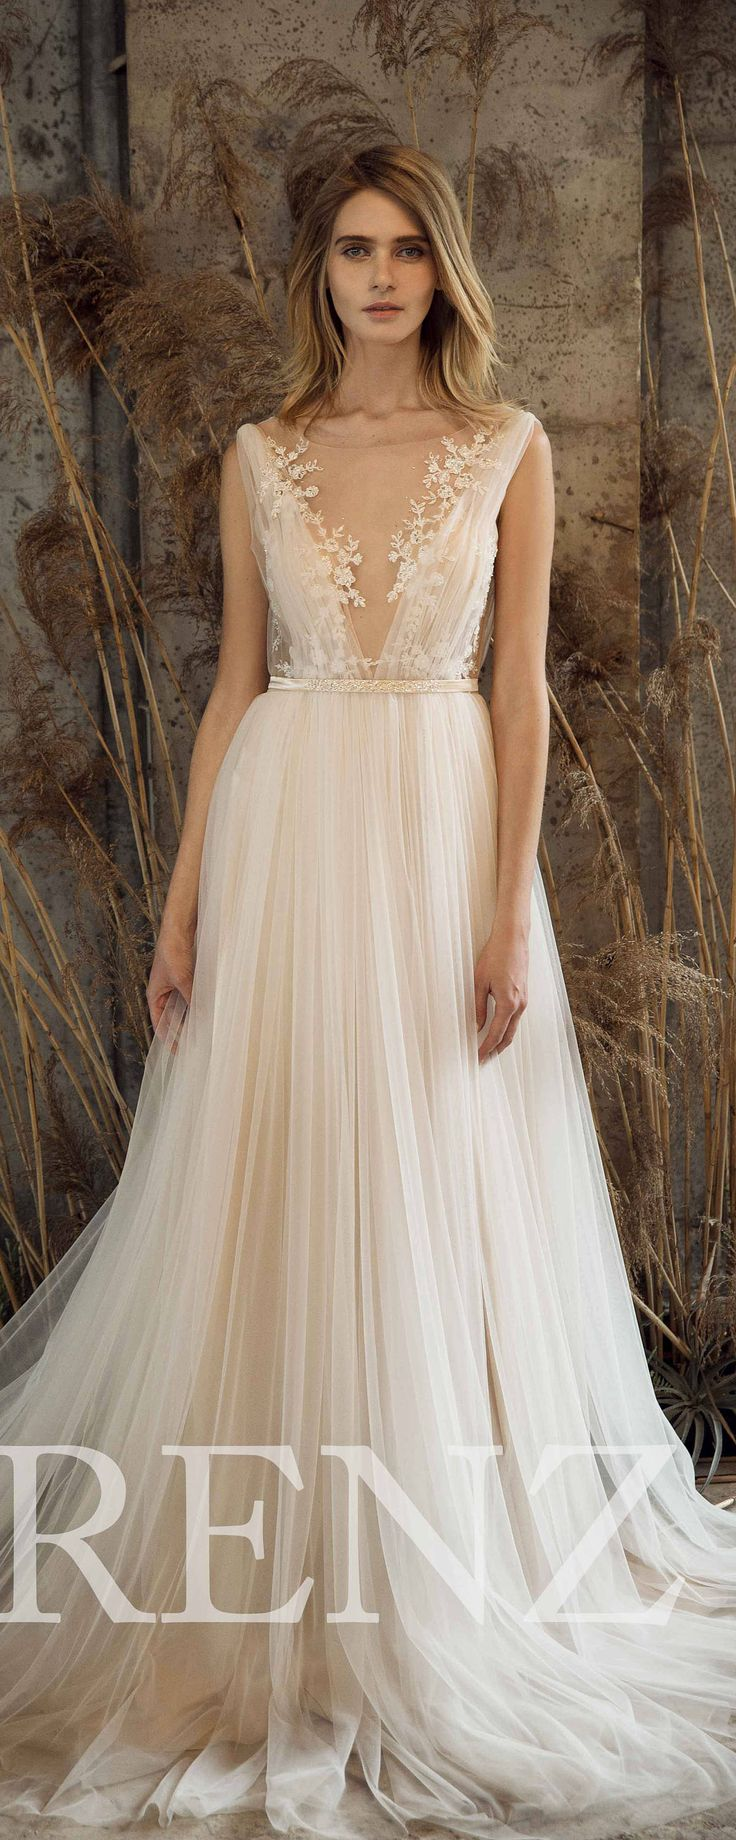 Wedding Dress Off White Tulle DressV Neck Bridal DressLace Illusion Backless Bride